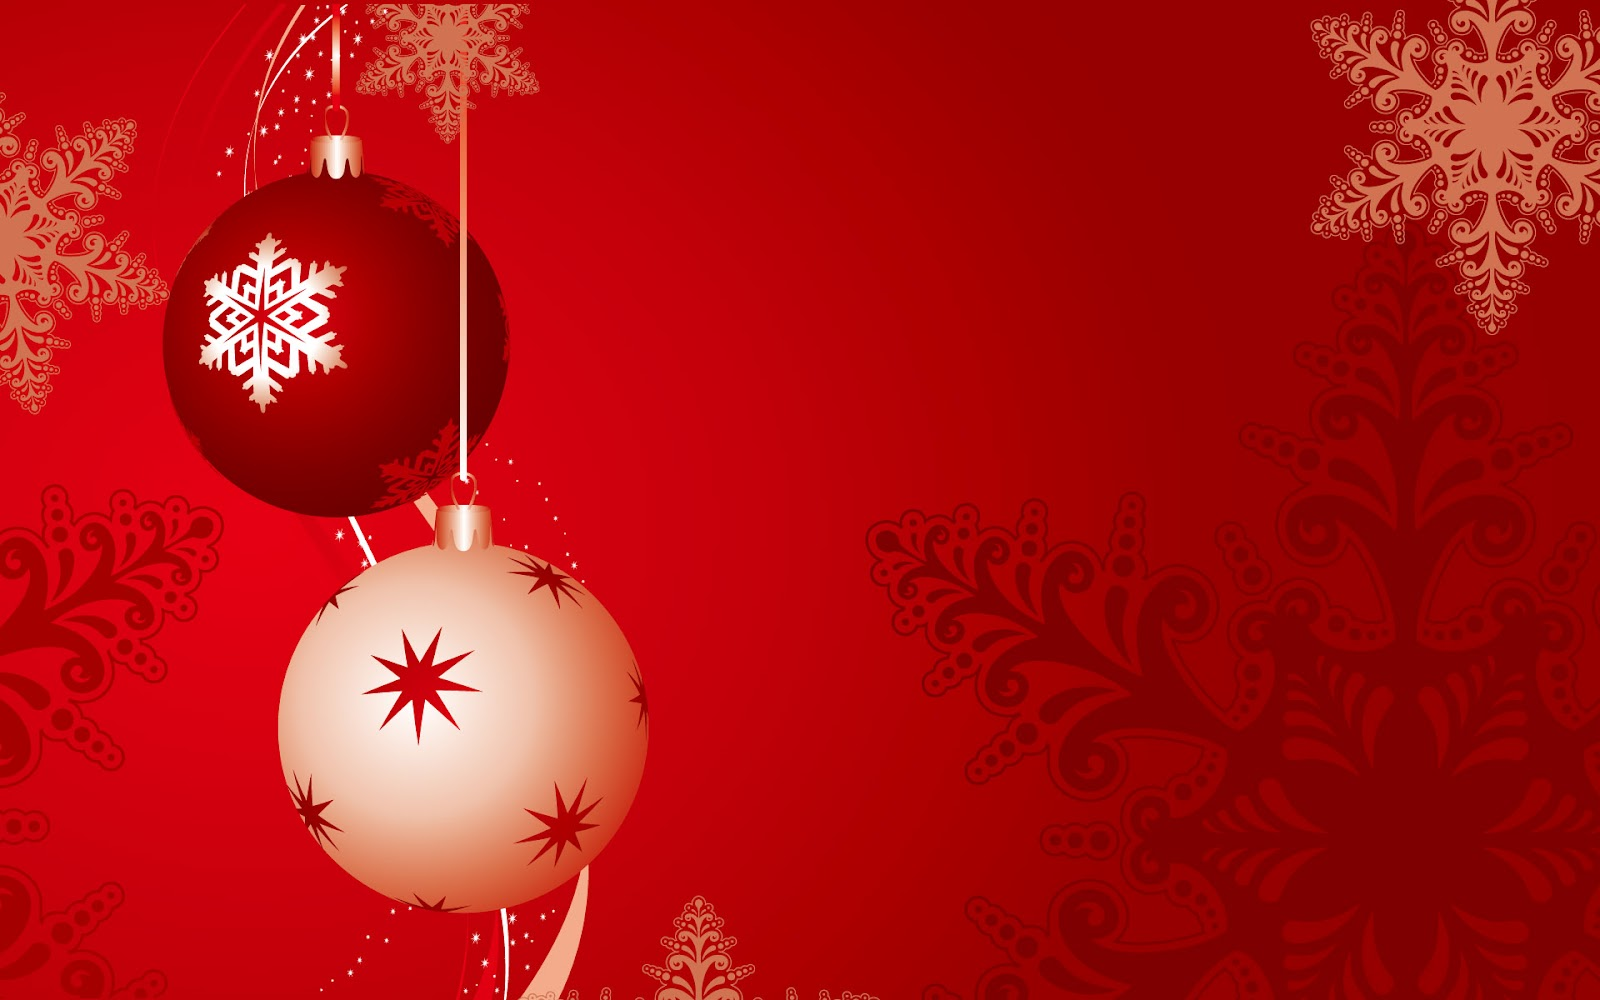 merry christmas 2014 2015 wallpapers backgrounds cards